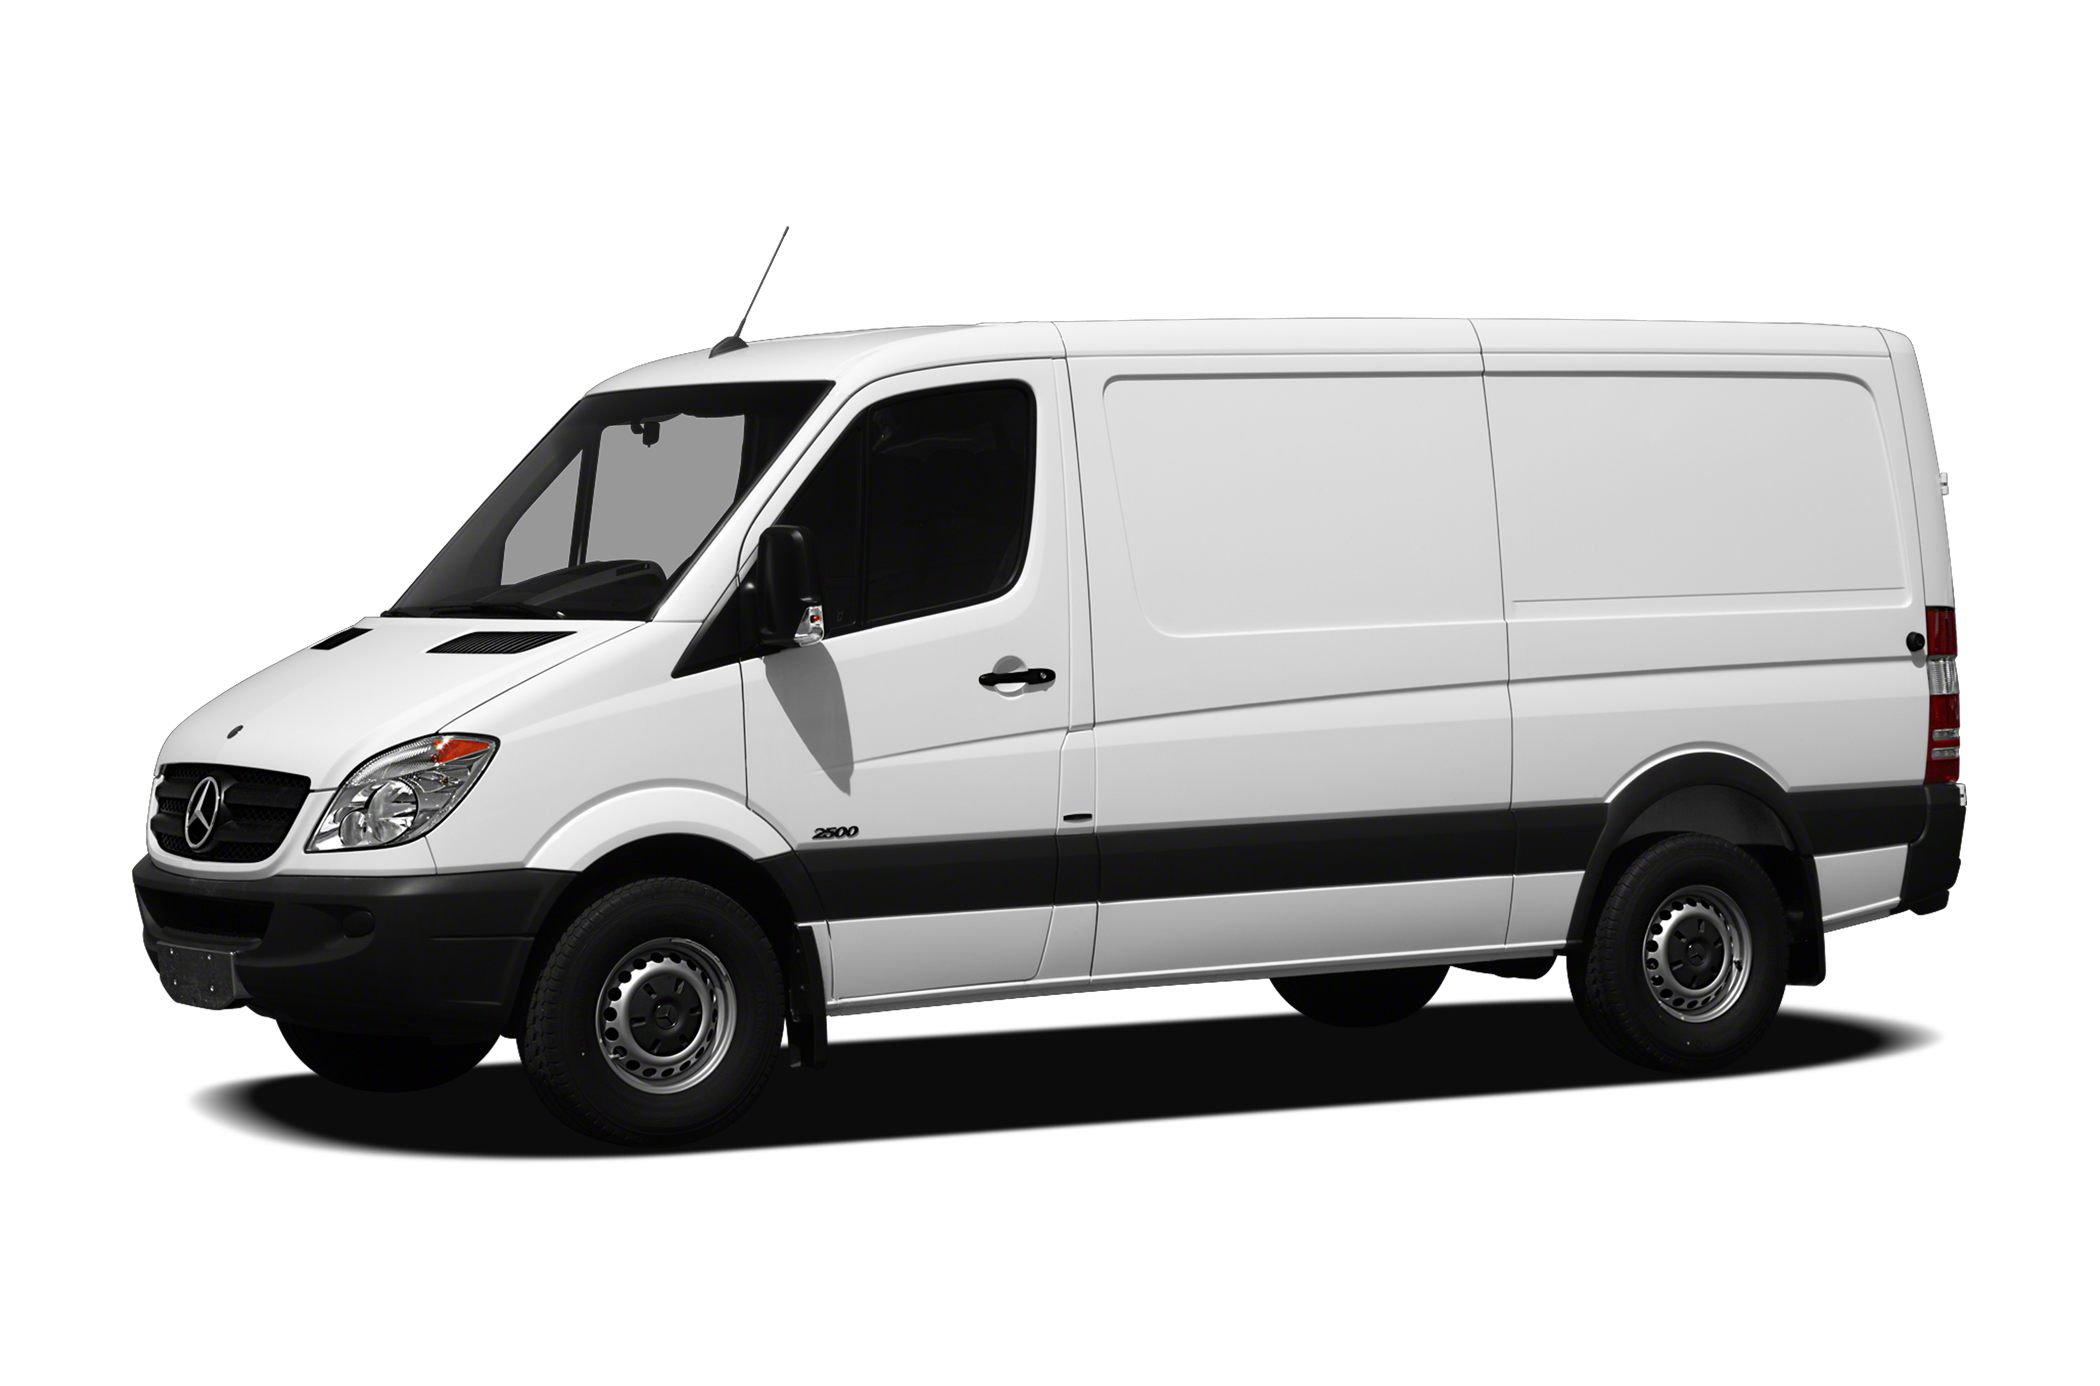 Mercedes benz sprinter van pricing reviews and new model for Mercedes benz sprinter canada